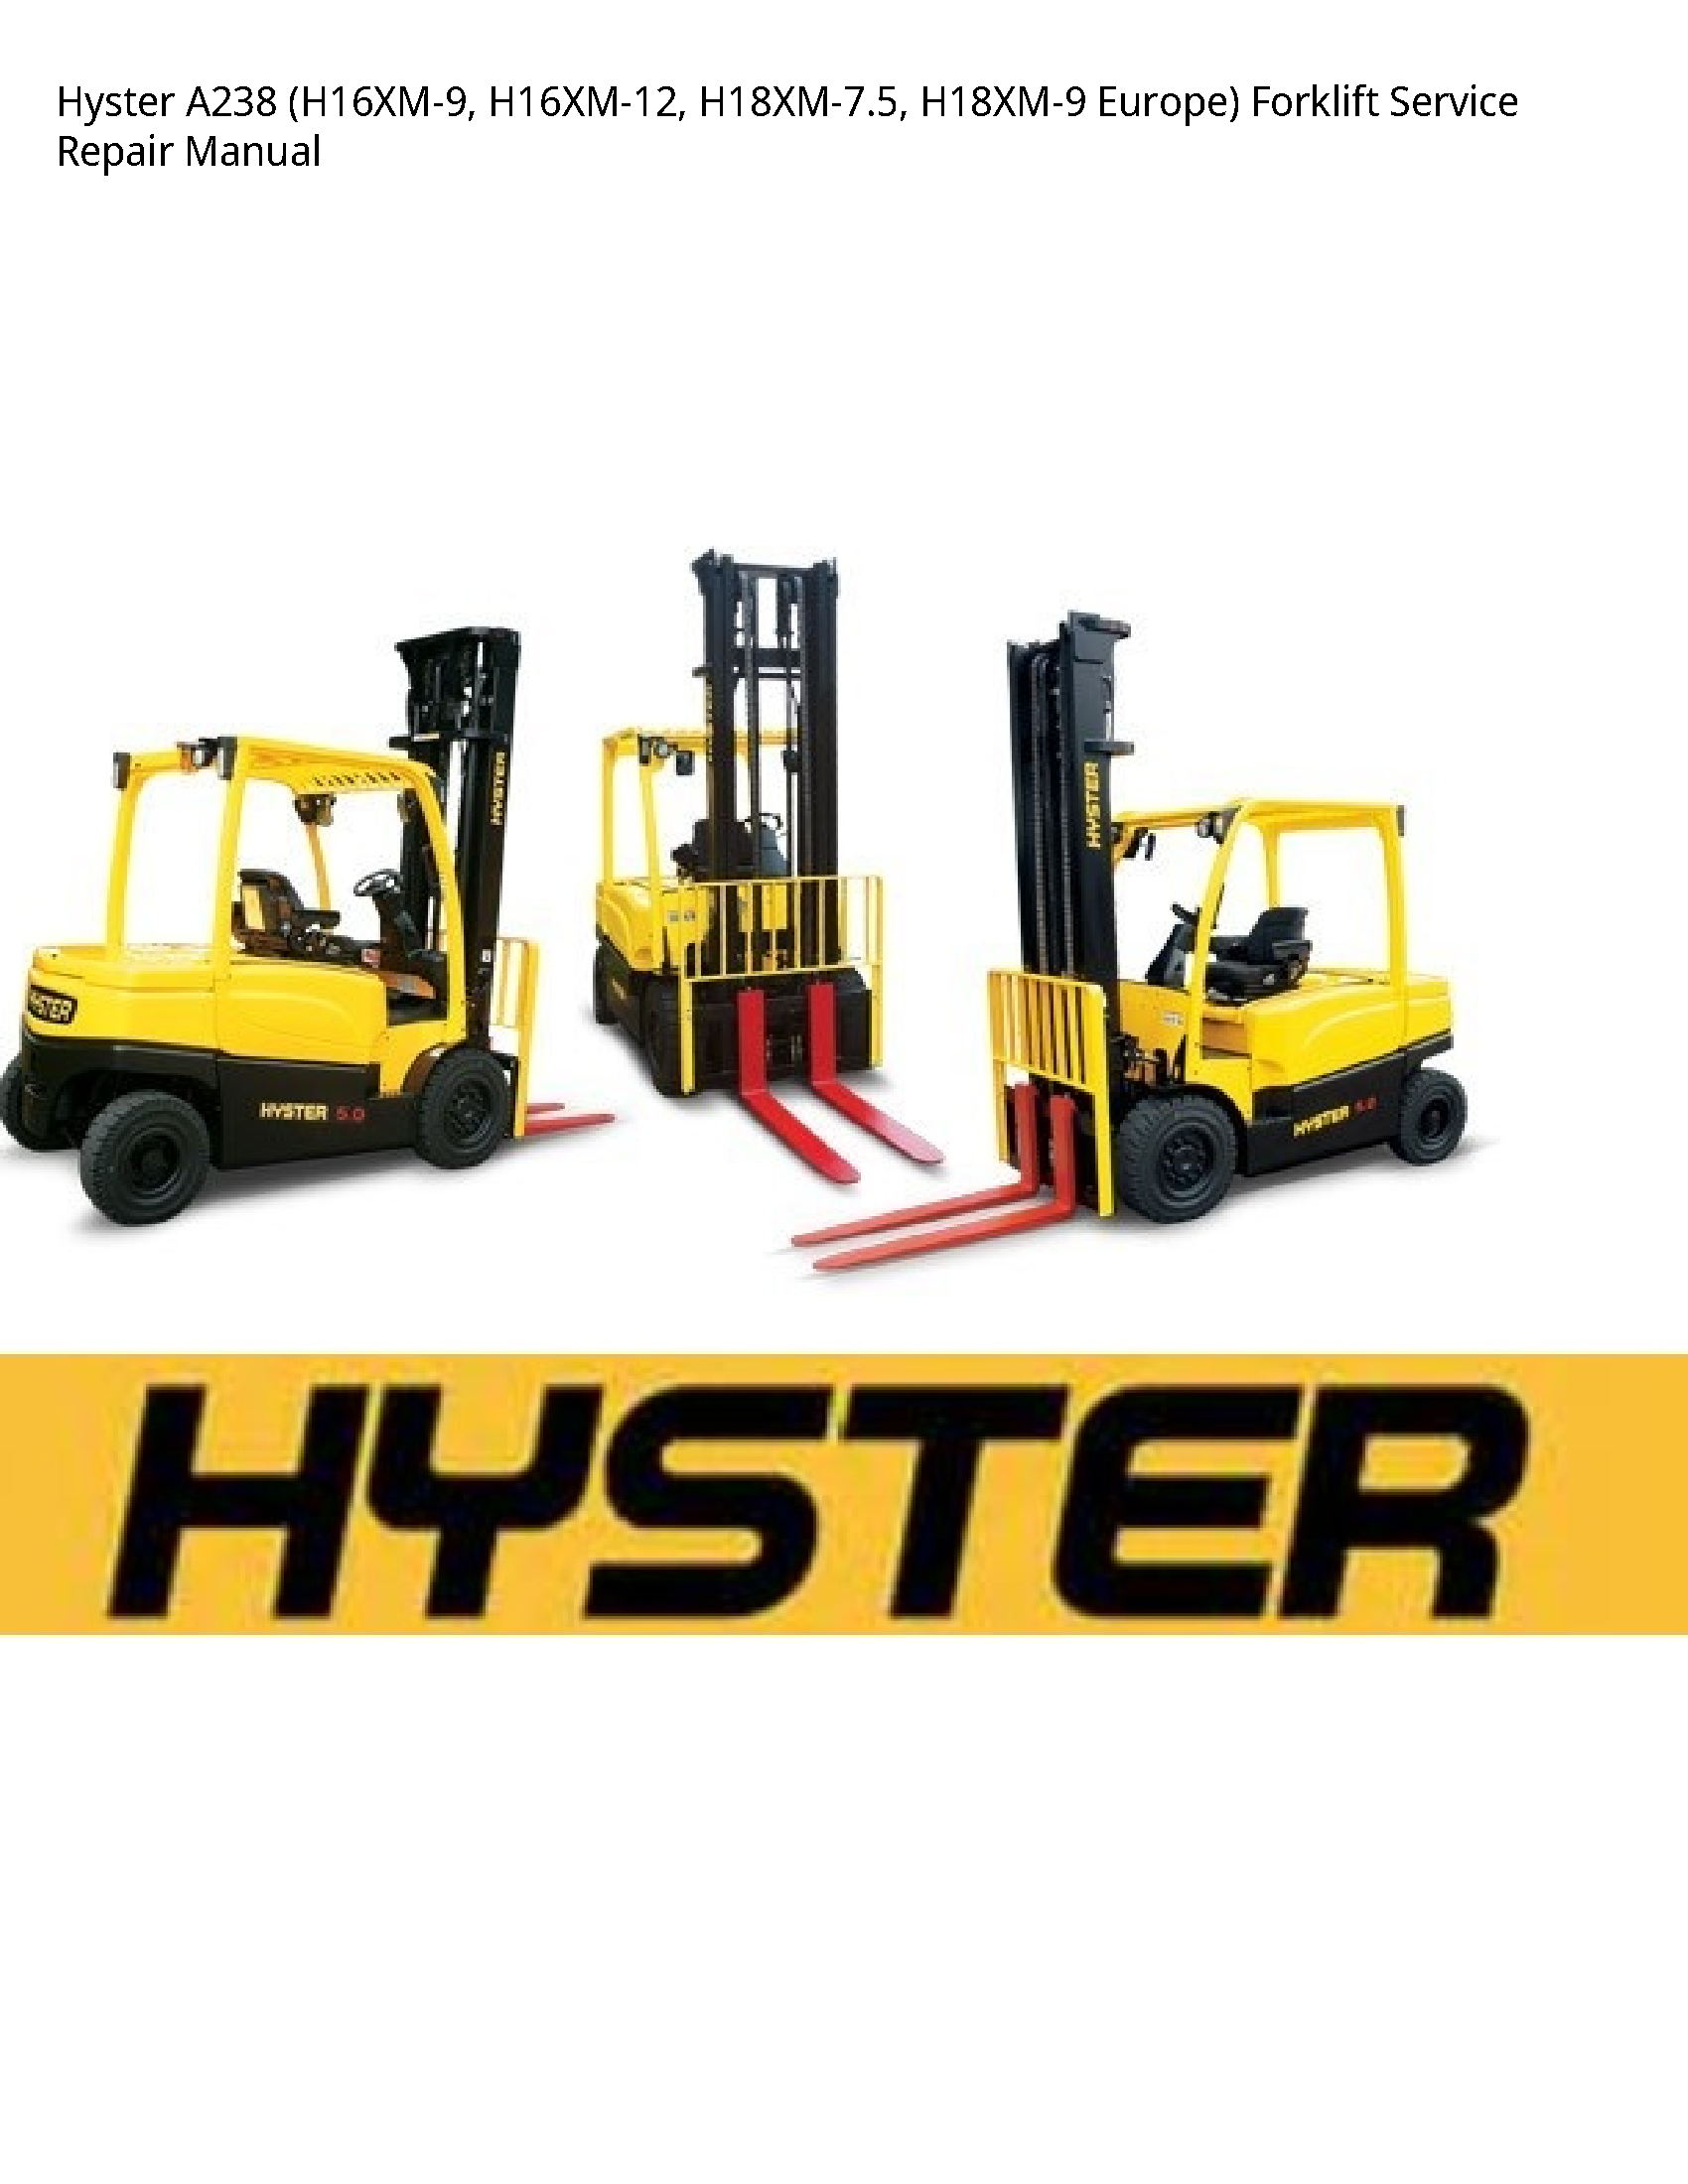 Hyster A238 Europe) Forklift manual